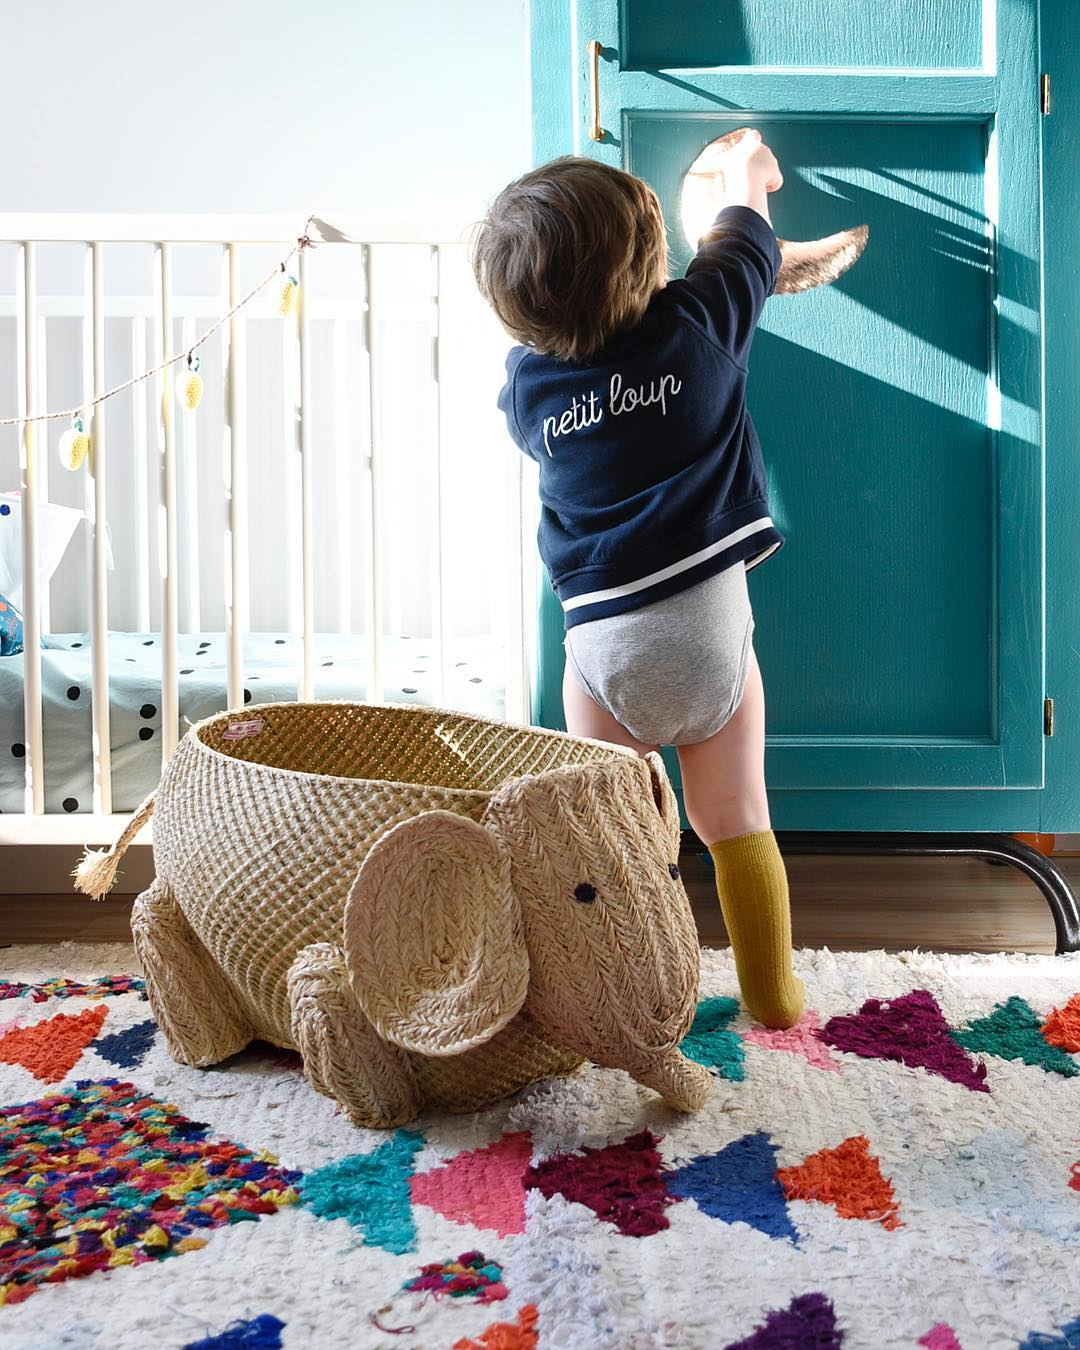 We Canu0027t Help But Smile Every Time We Set Our Eyes On This Adorable  Elephant Basket. Thereu0027s Also A Kangaroo Version Which Is Just As Fun. Who  Knew Storage ...